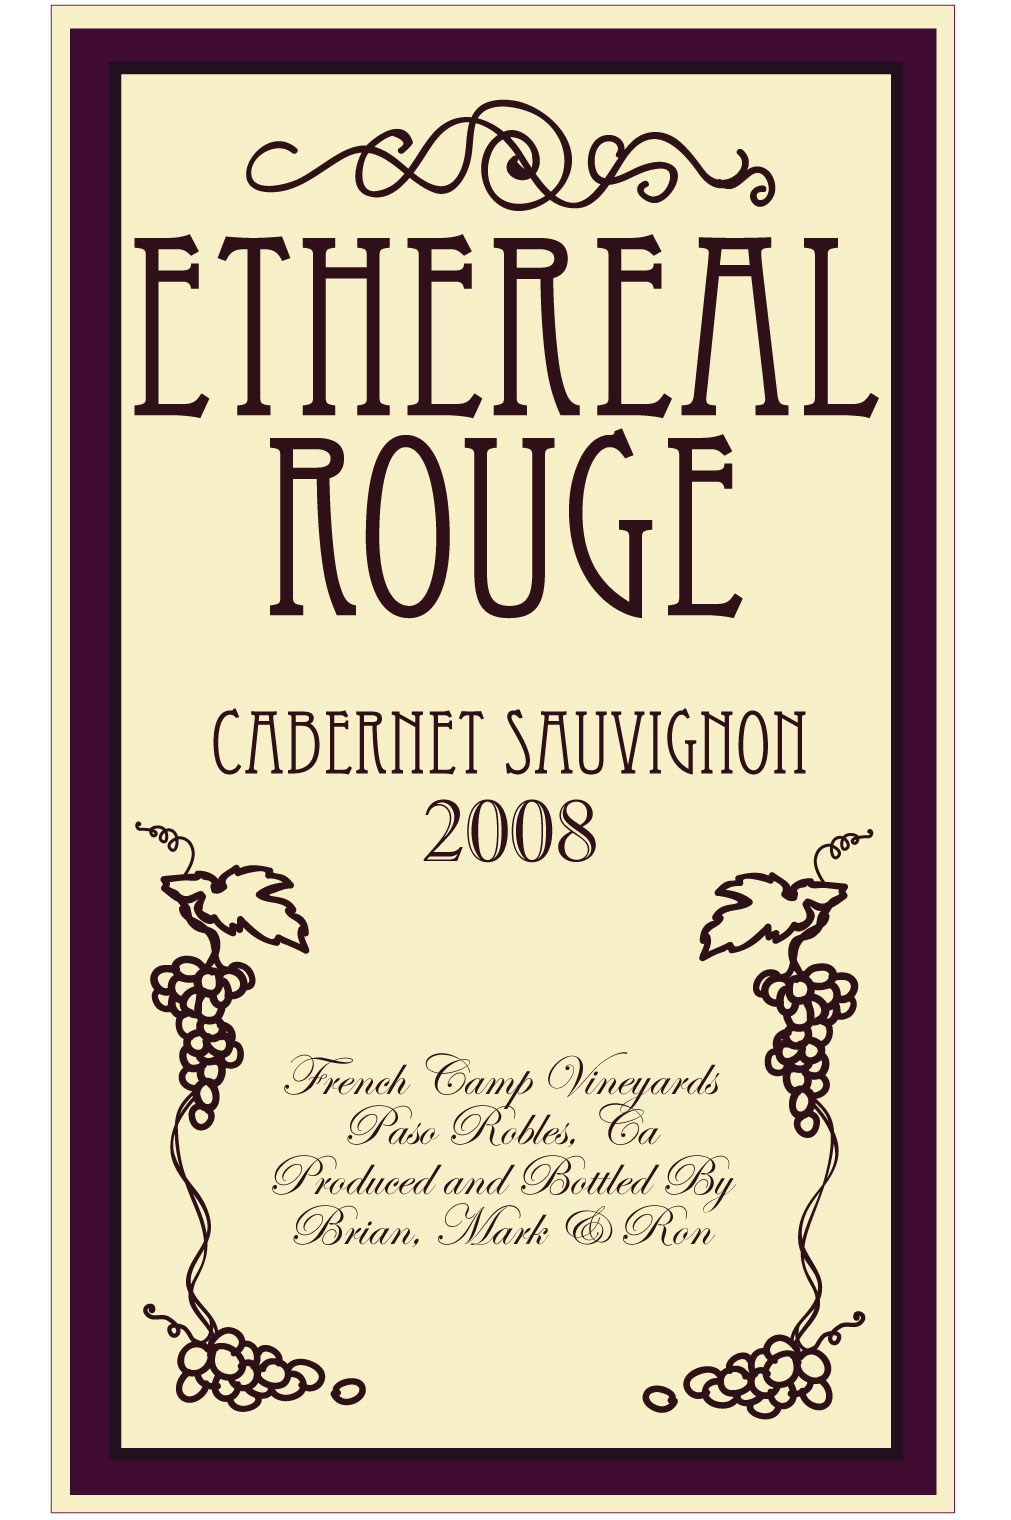 Sam's Sketchbook: Wine Bottle Label